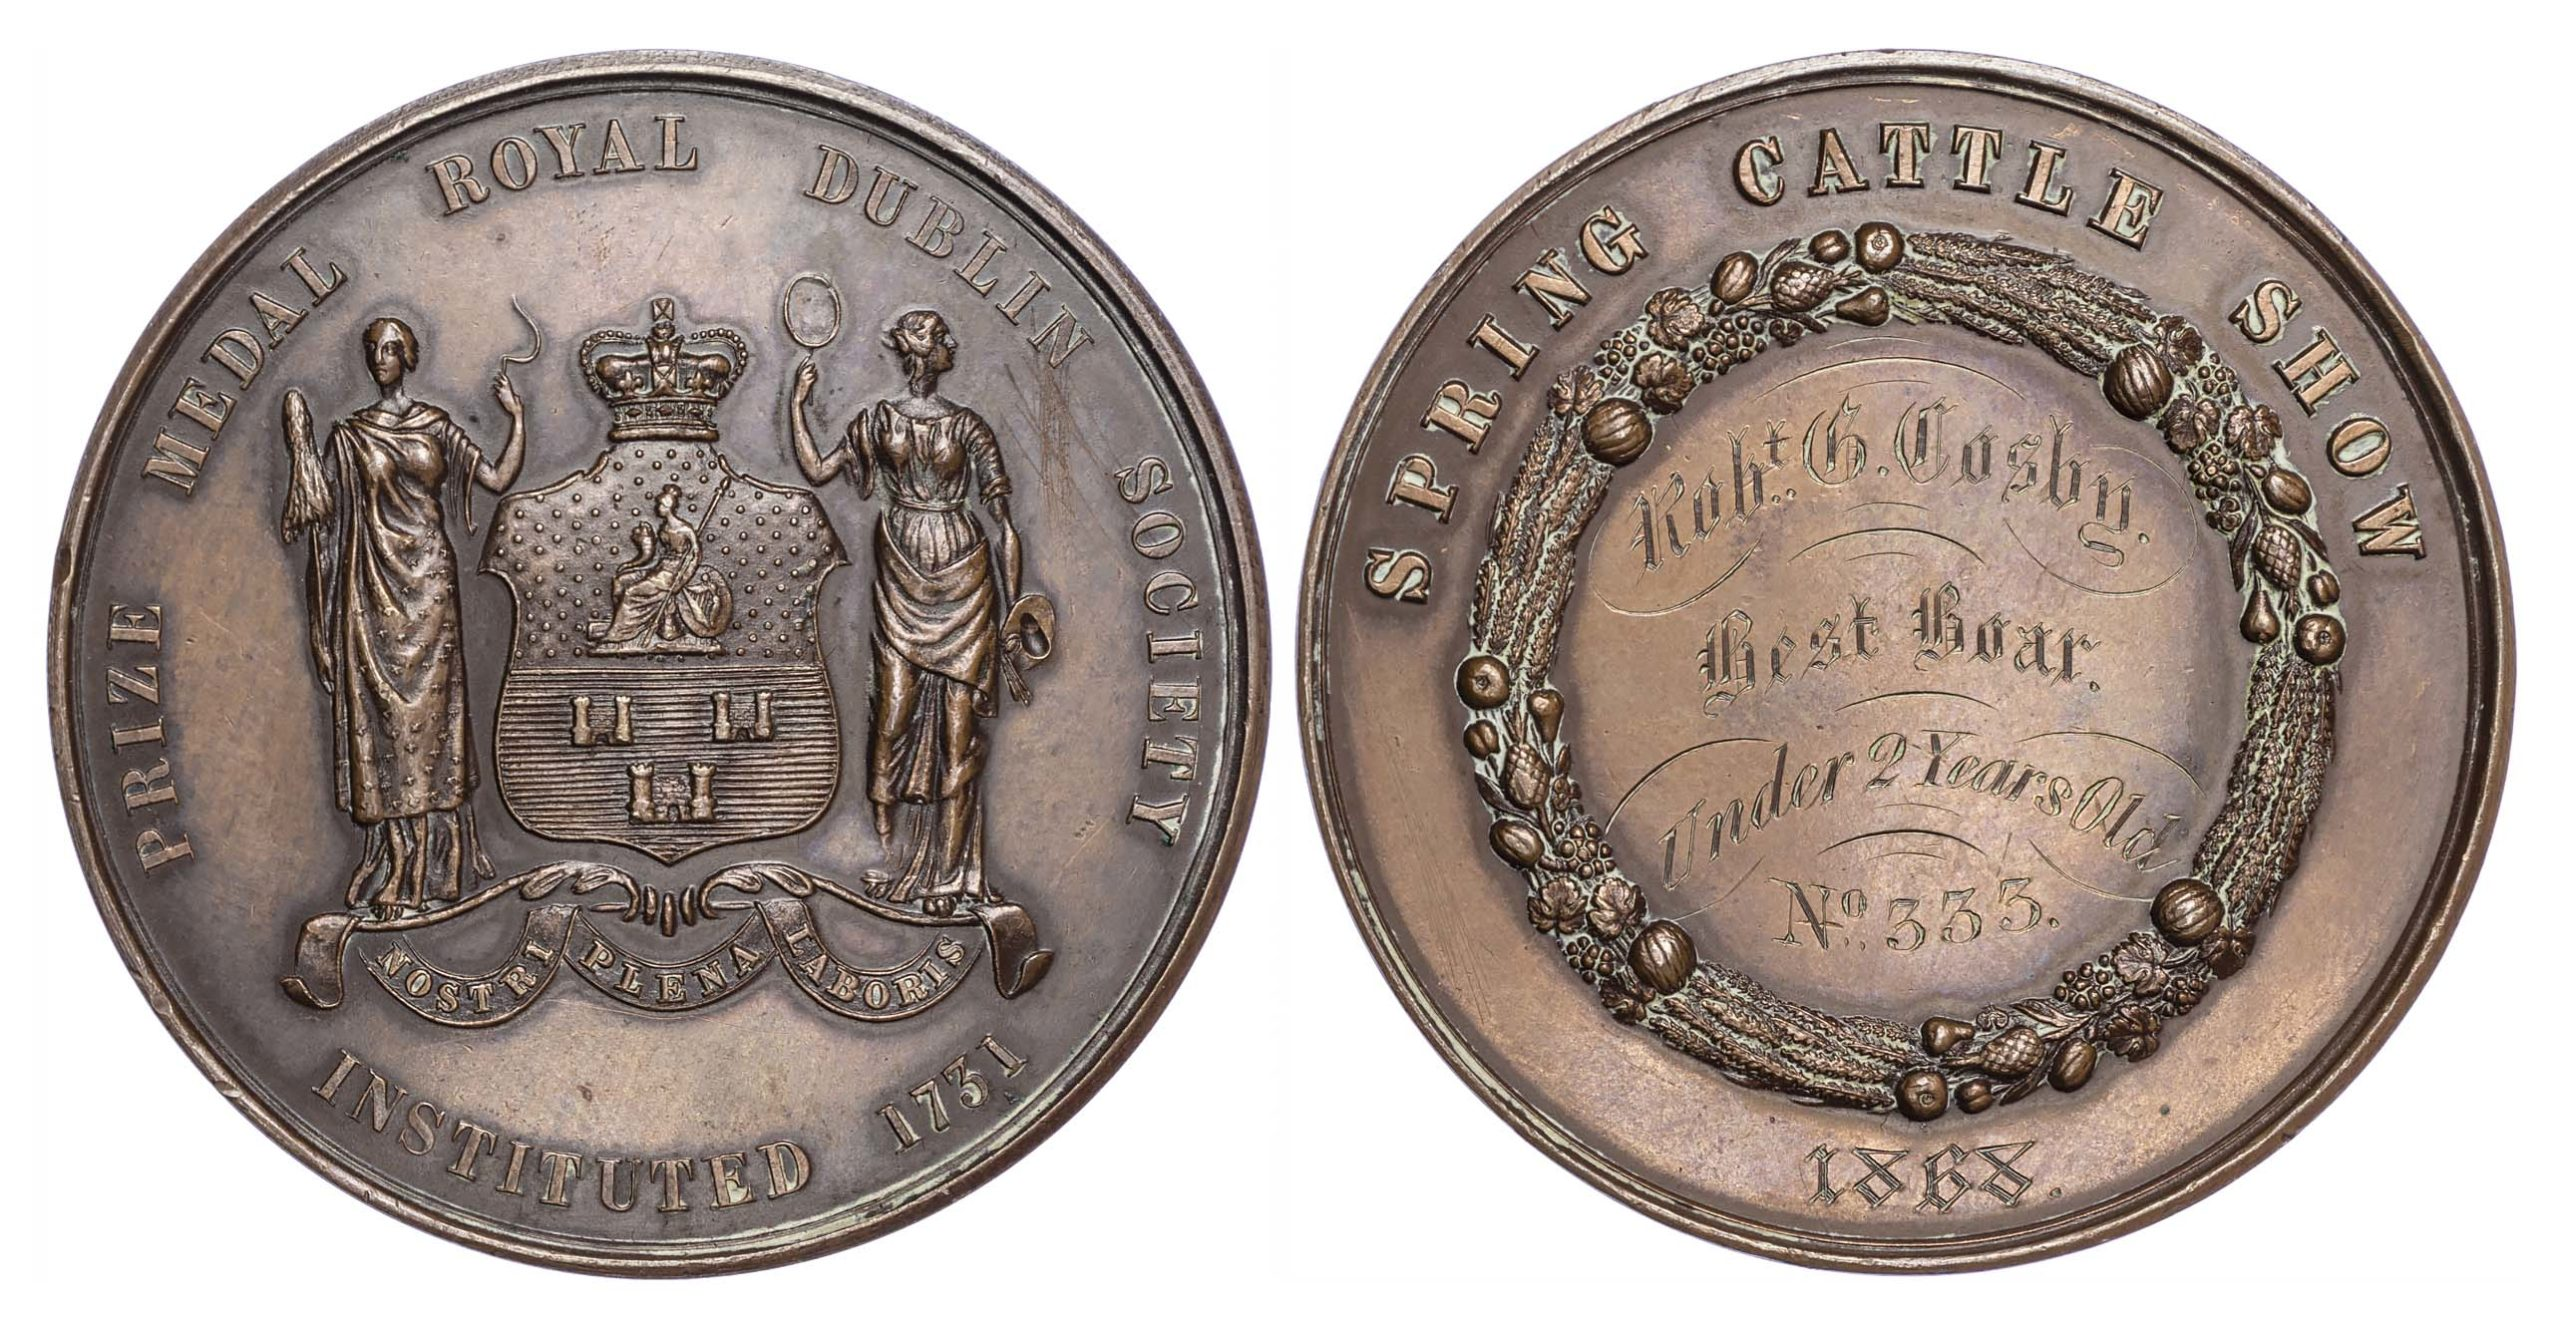 Royal Dublin Society Spring Cattle Show 1868, a Bronze prize medal